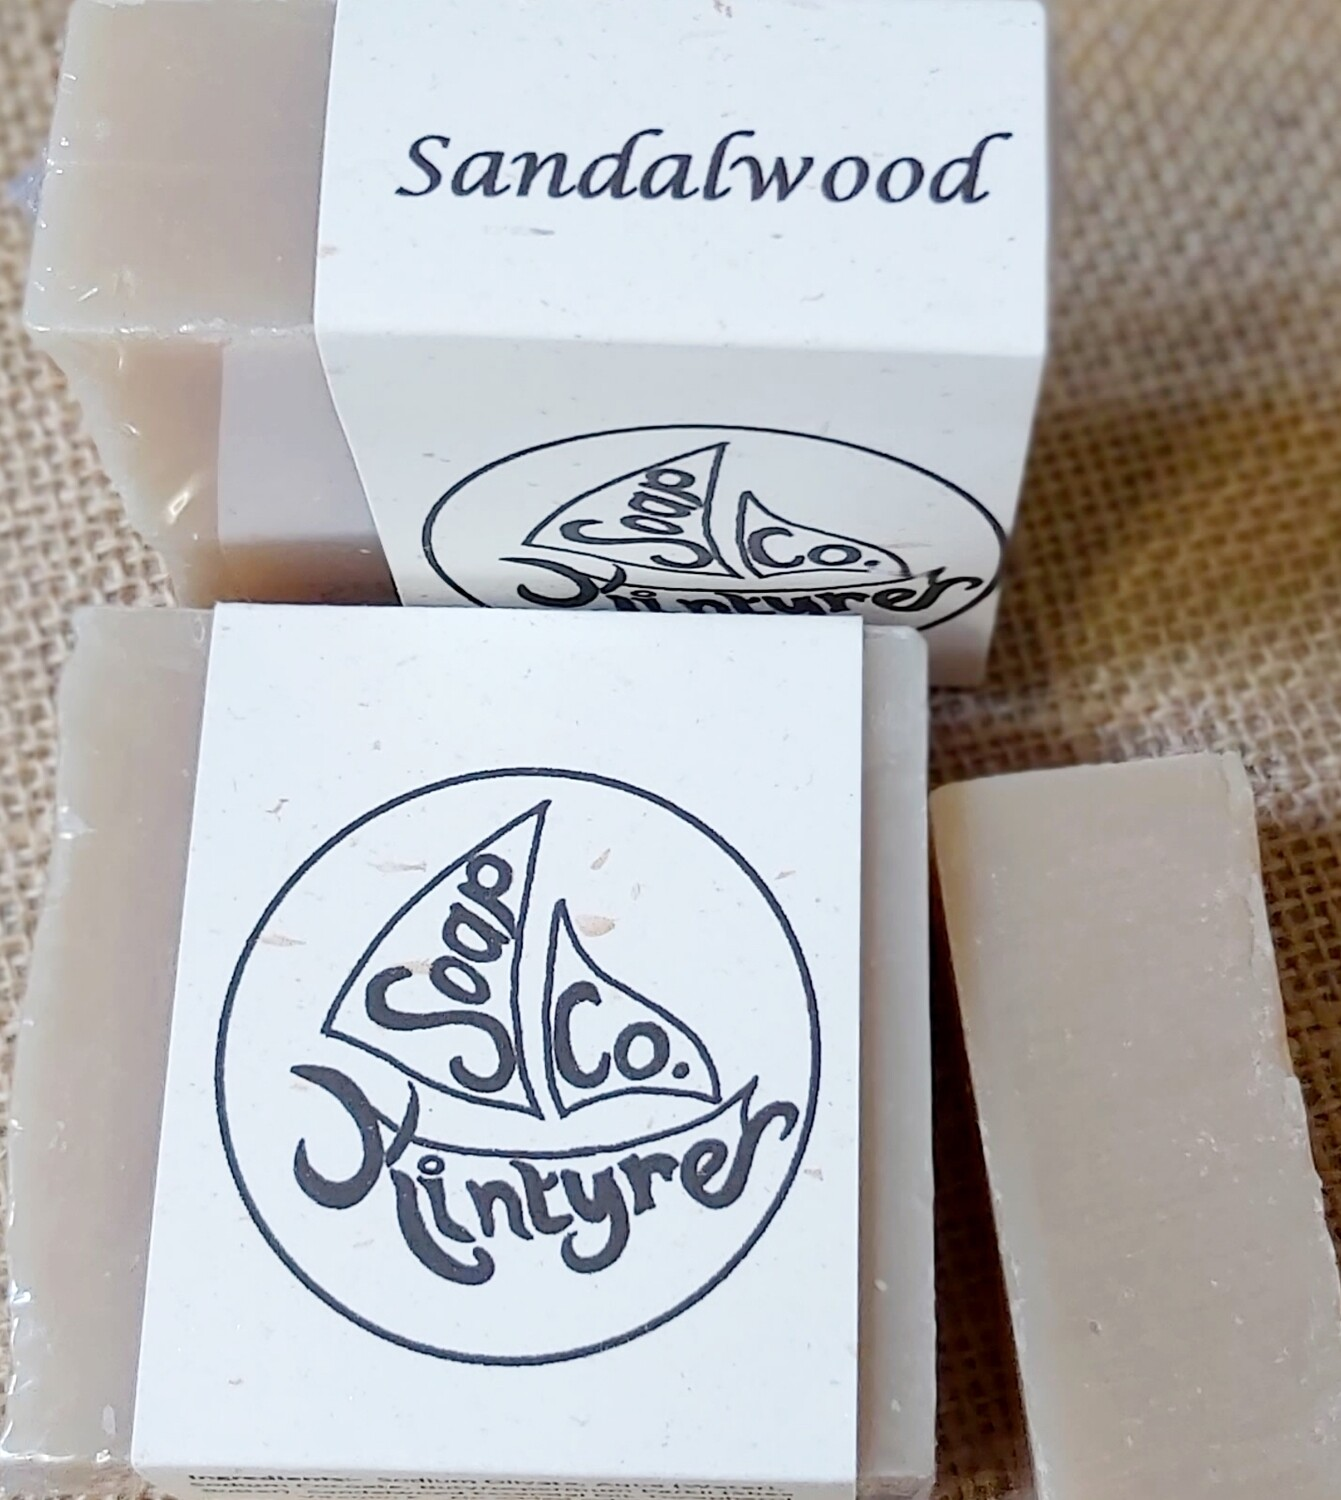 'Sandalwood' cold processed soap